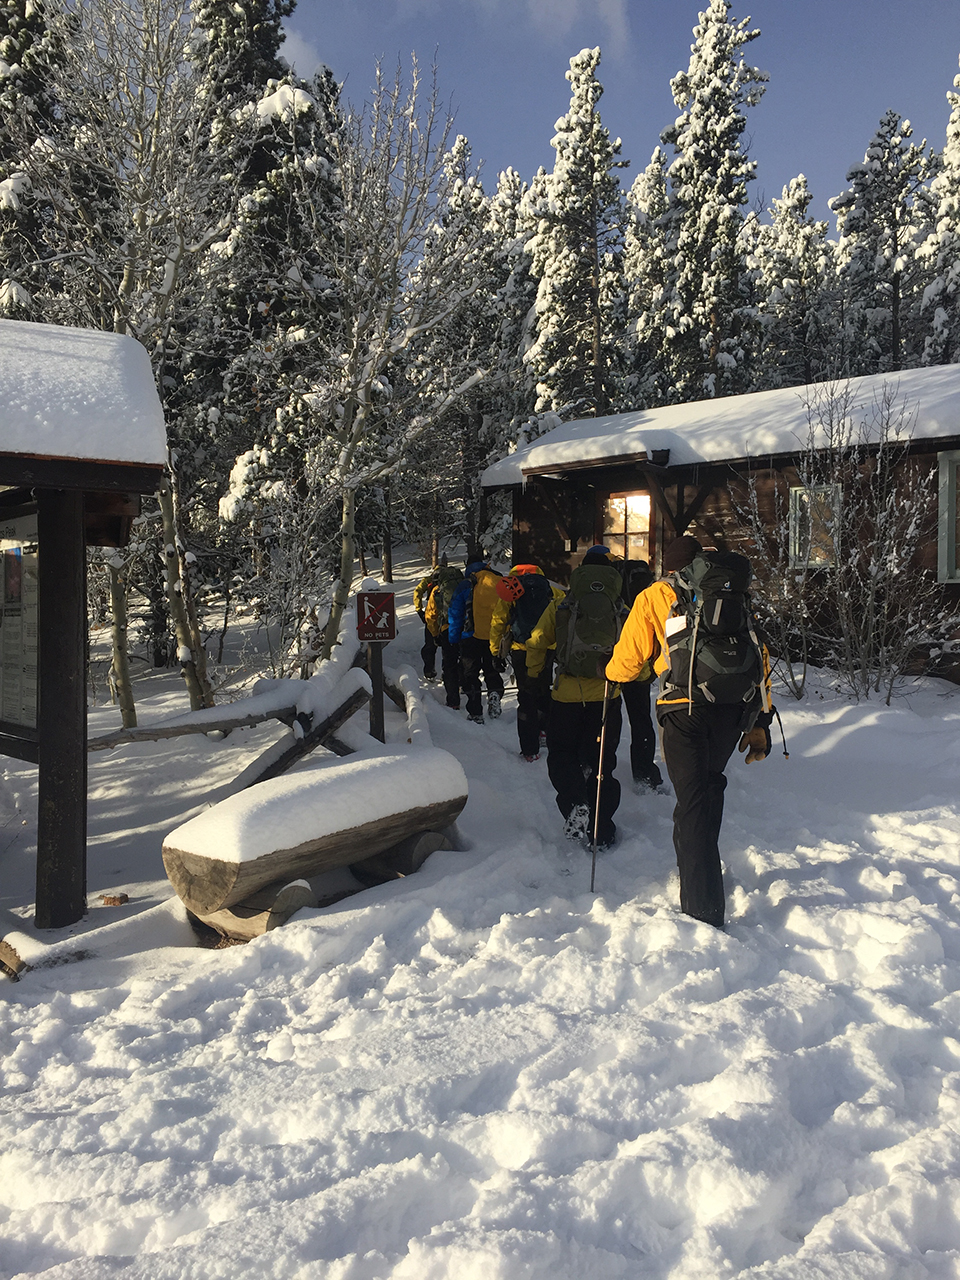 Park rangers set out over snow on their search and rescue mission